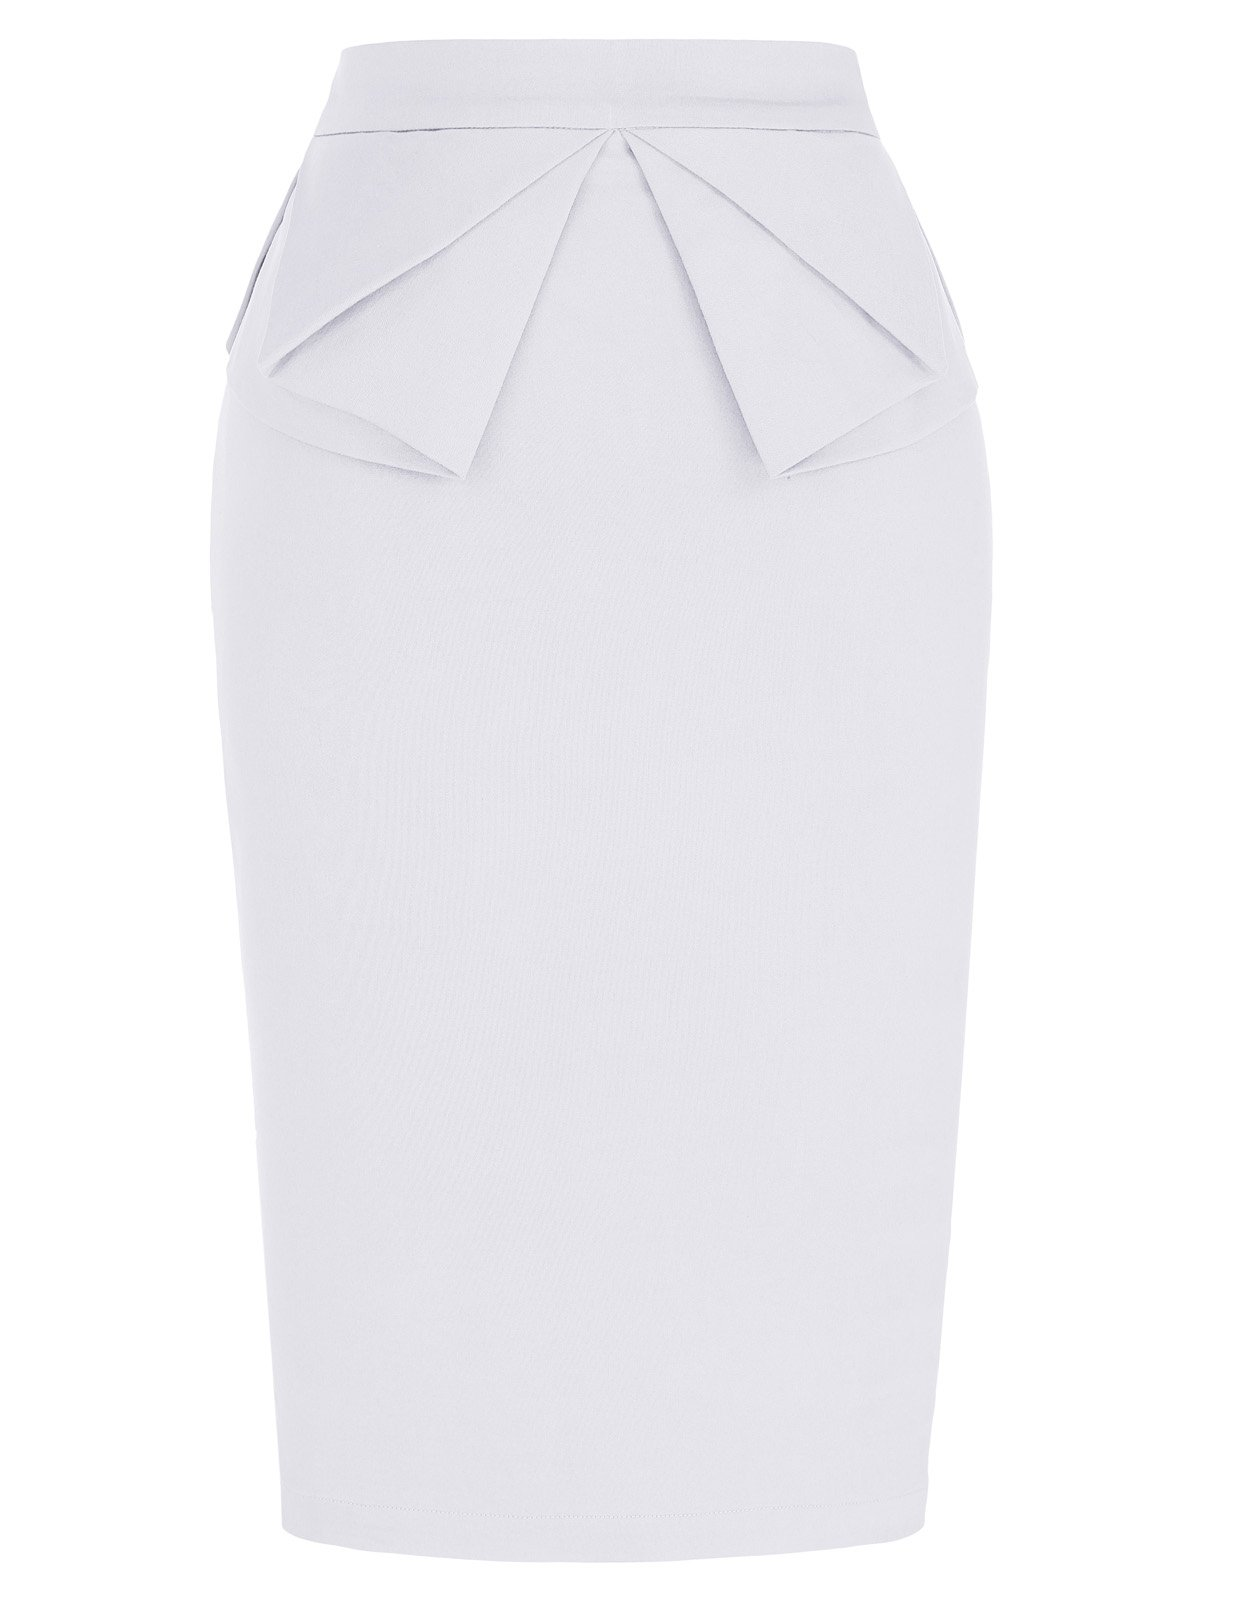 GRACE KARIN Women's Wear to Work Stretchy Office Pencil Skirt